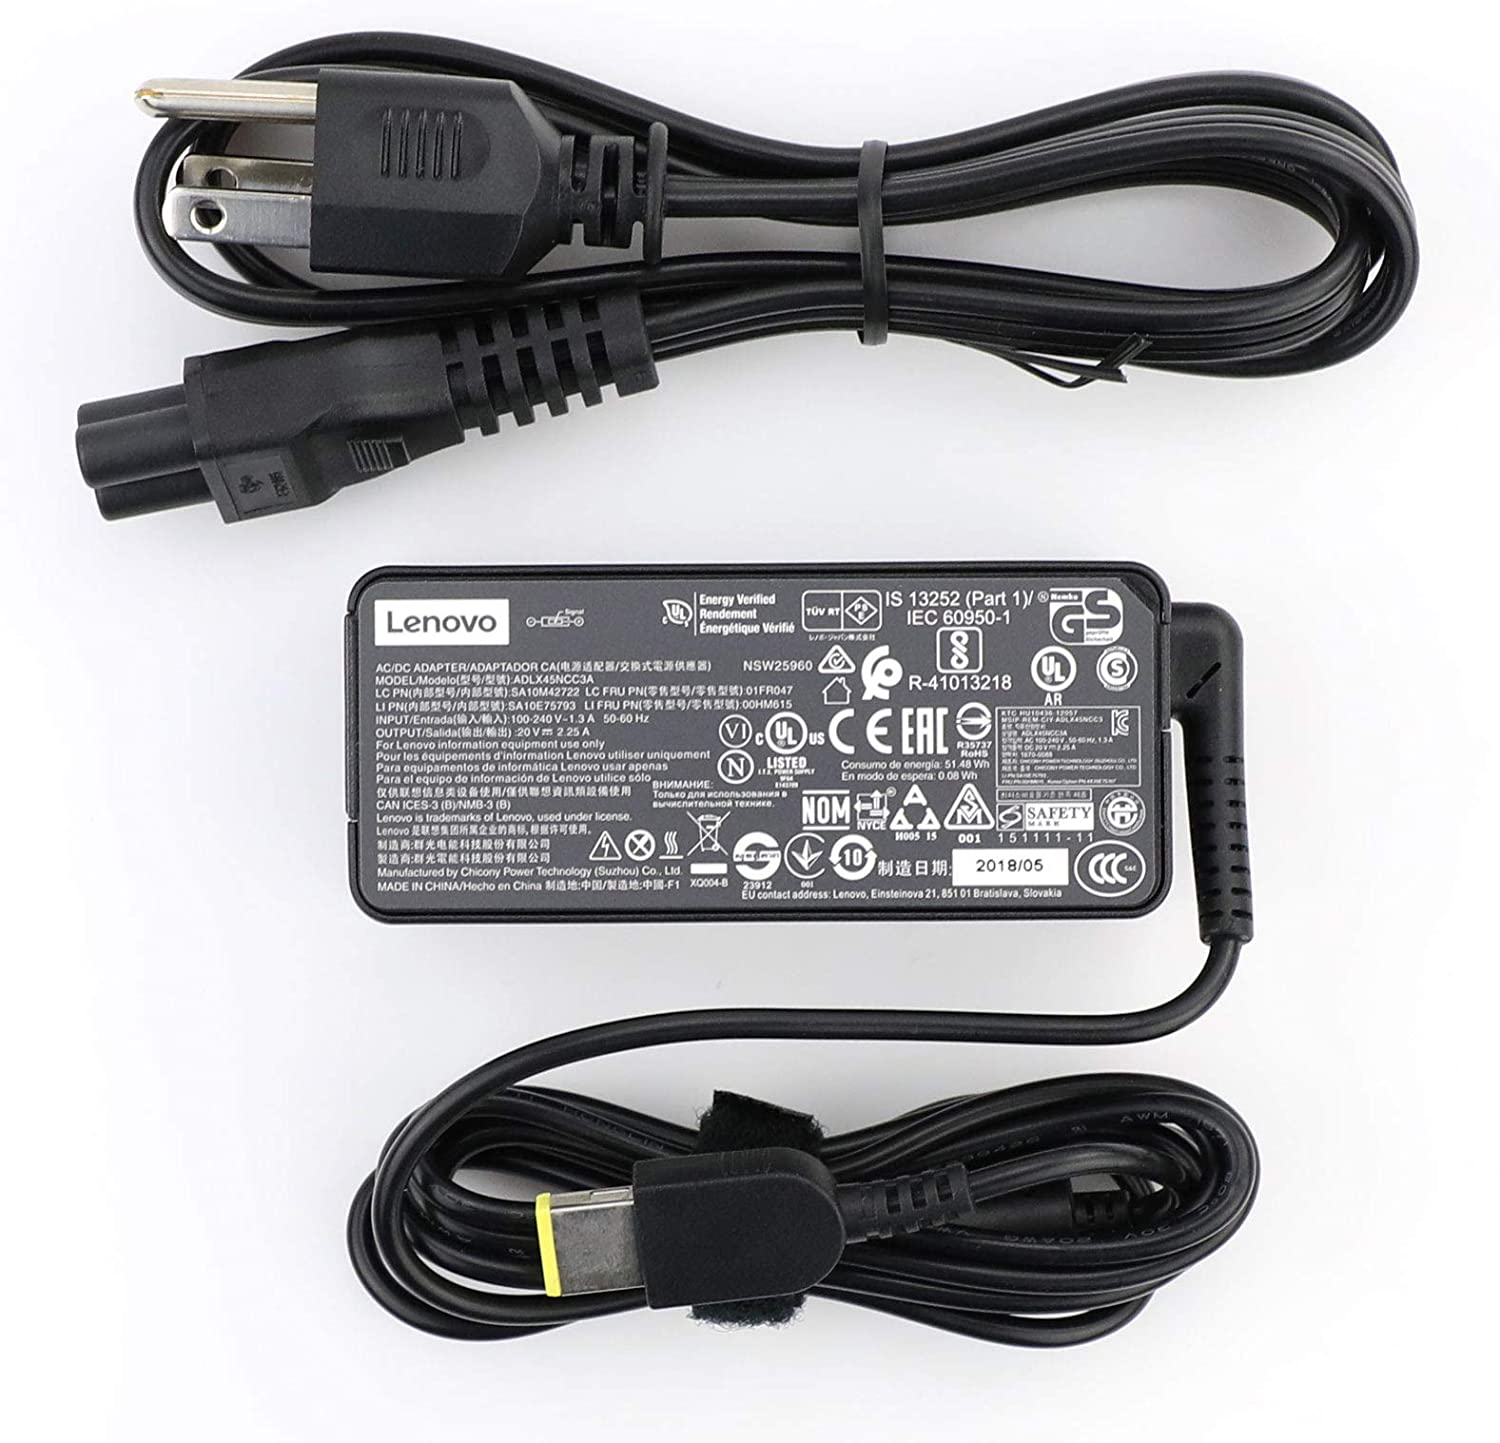 New Genuine ThinkPad Laptop Charger 45W 20V 2.25A Slim Tip AC Adapter ADLX45NCC3A for Lenovo ThinkPad X230s X240 X240S X250 X260 X270 T440 T440S